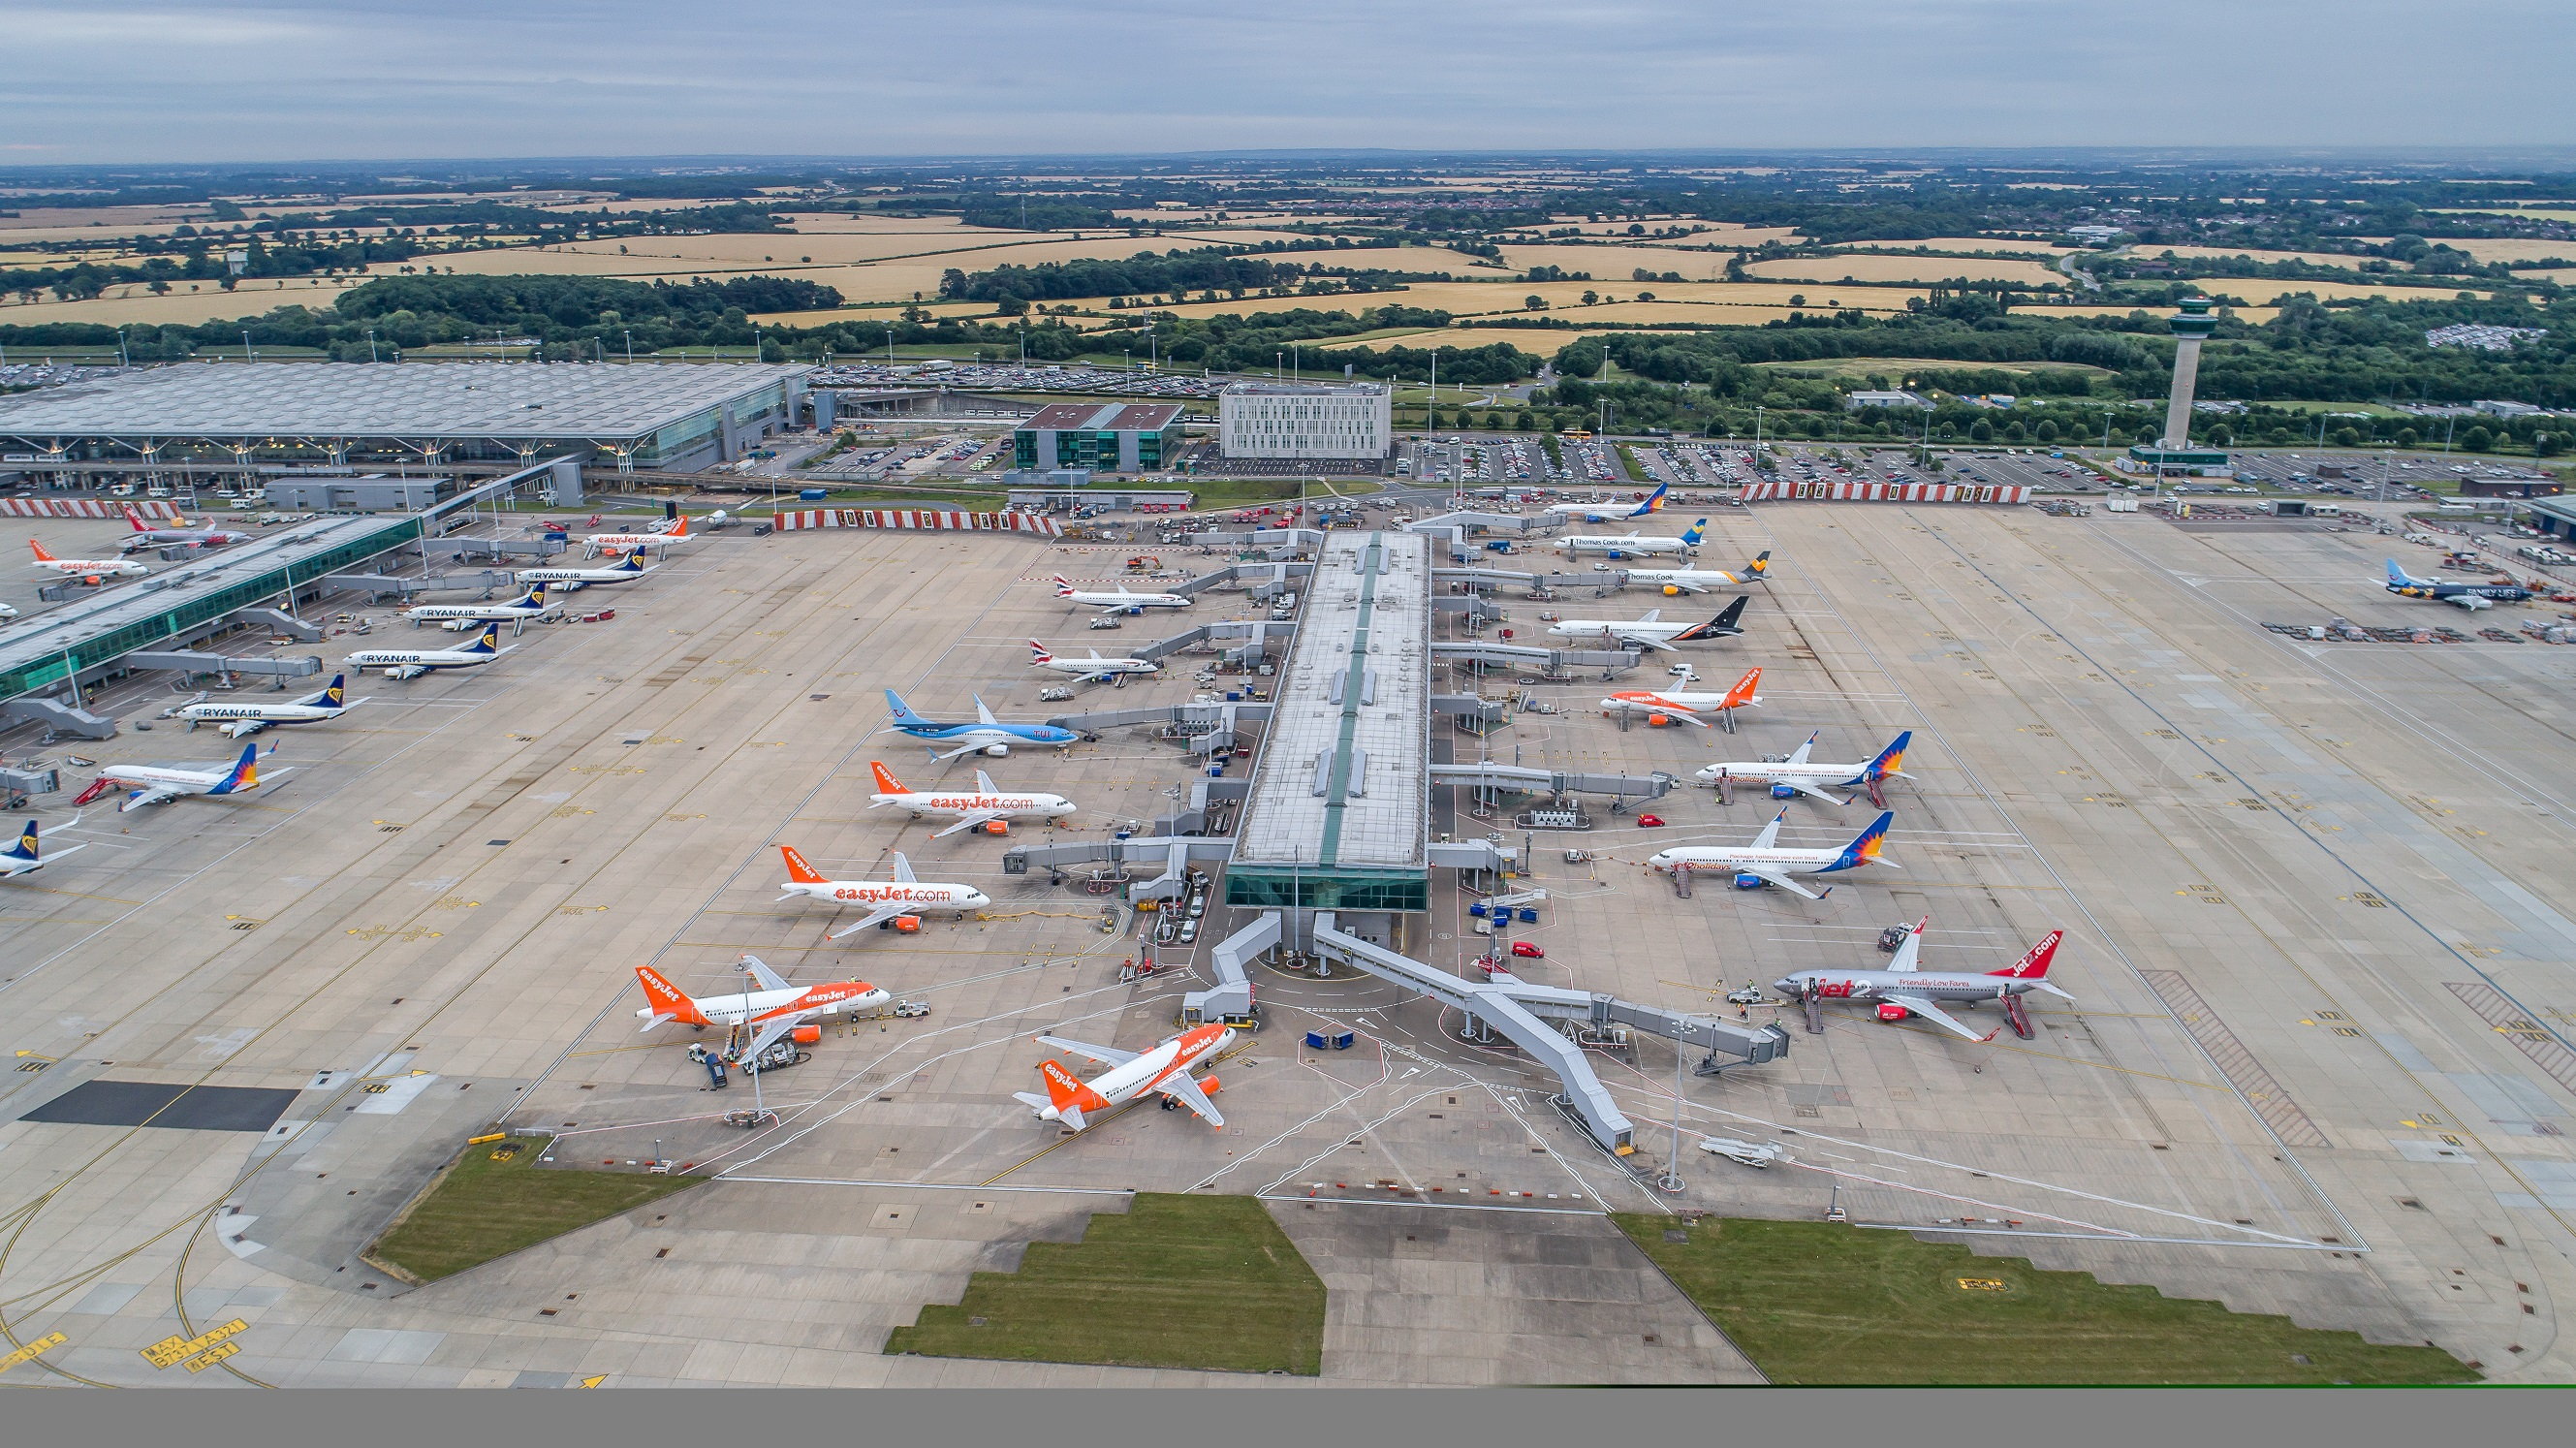 Additional aircraft stands in operation at stansted airport additional aircraft stands in operation at stansted airport m4hsunfo